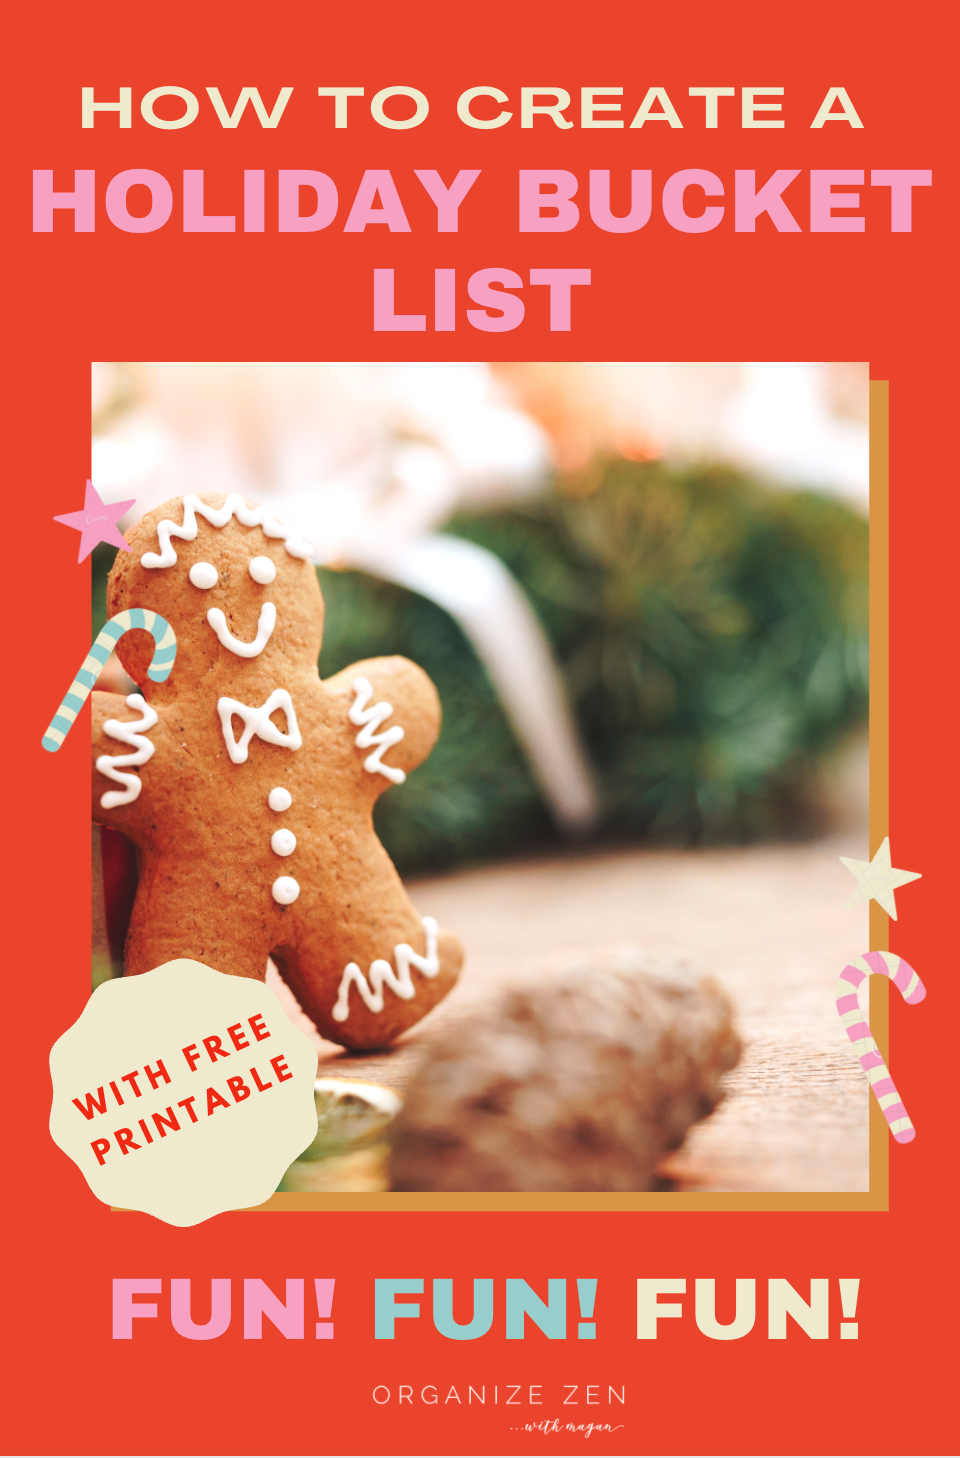 Gingerbread man with Holiday Bucket List Ideas